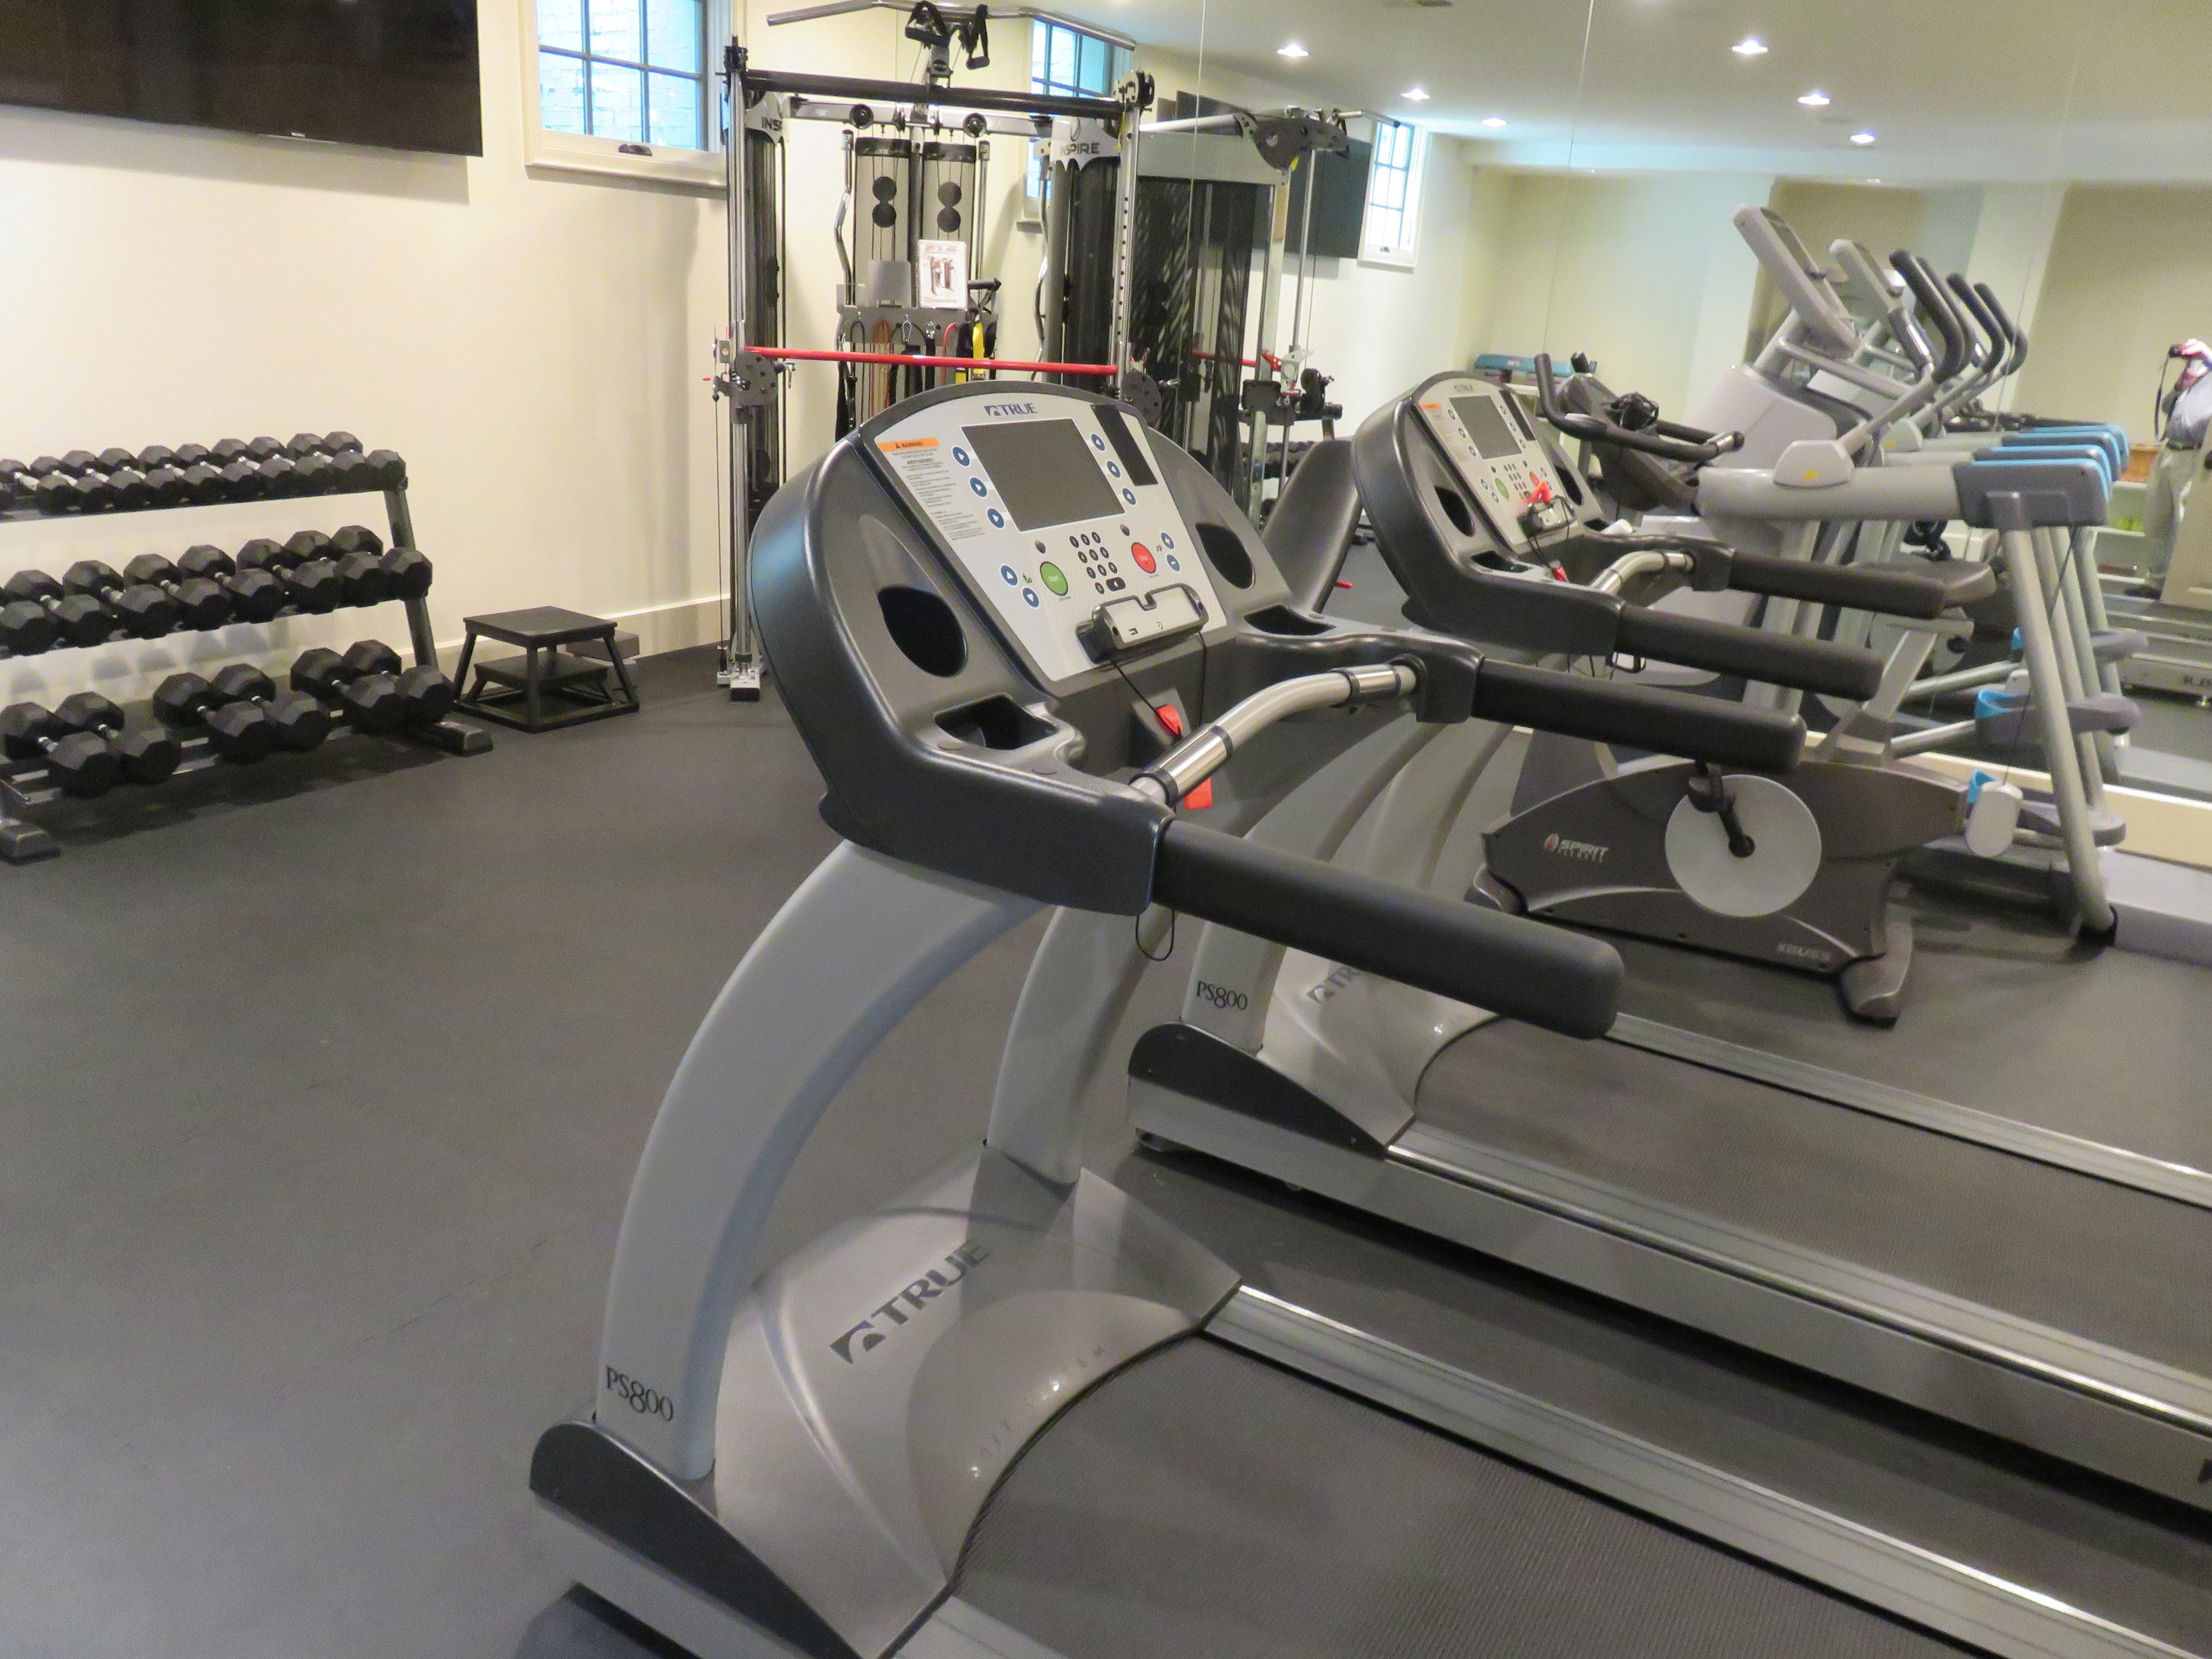 The lower level of the Magnolia Bluff home features a gym.